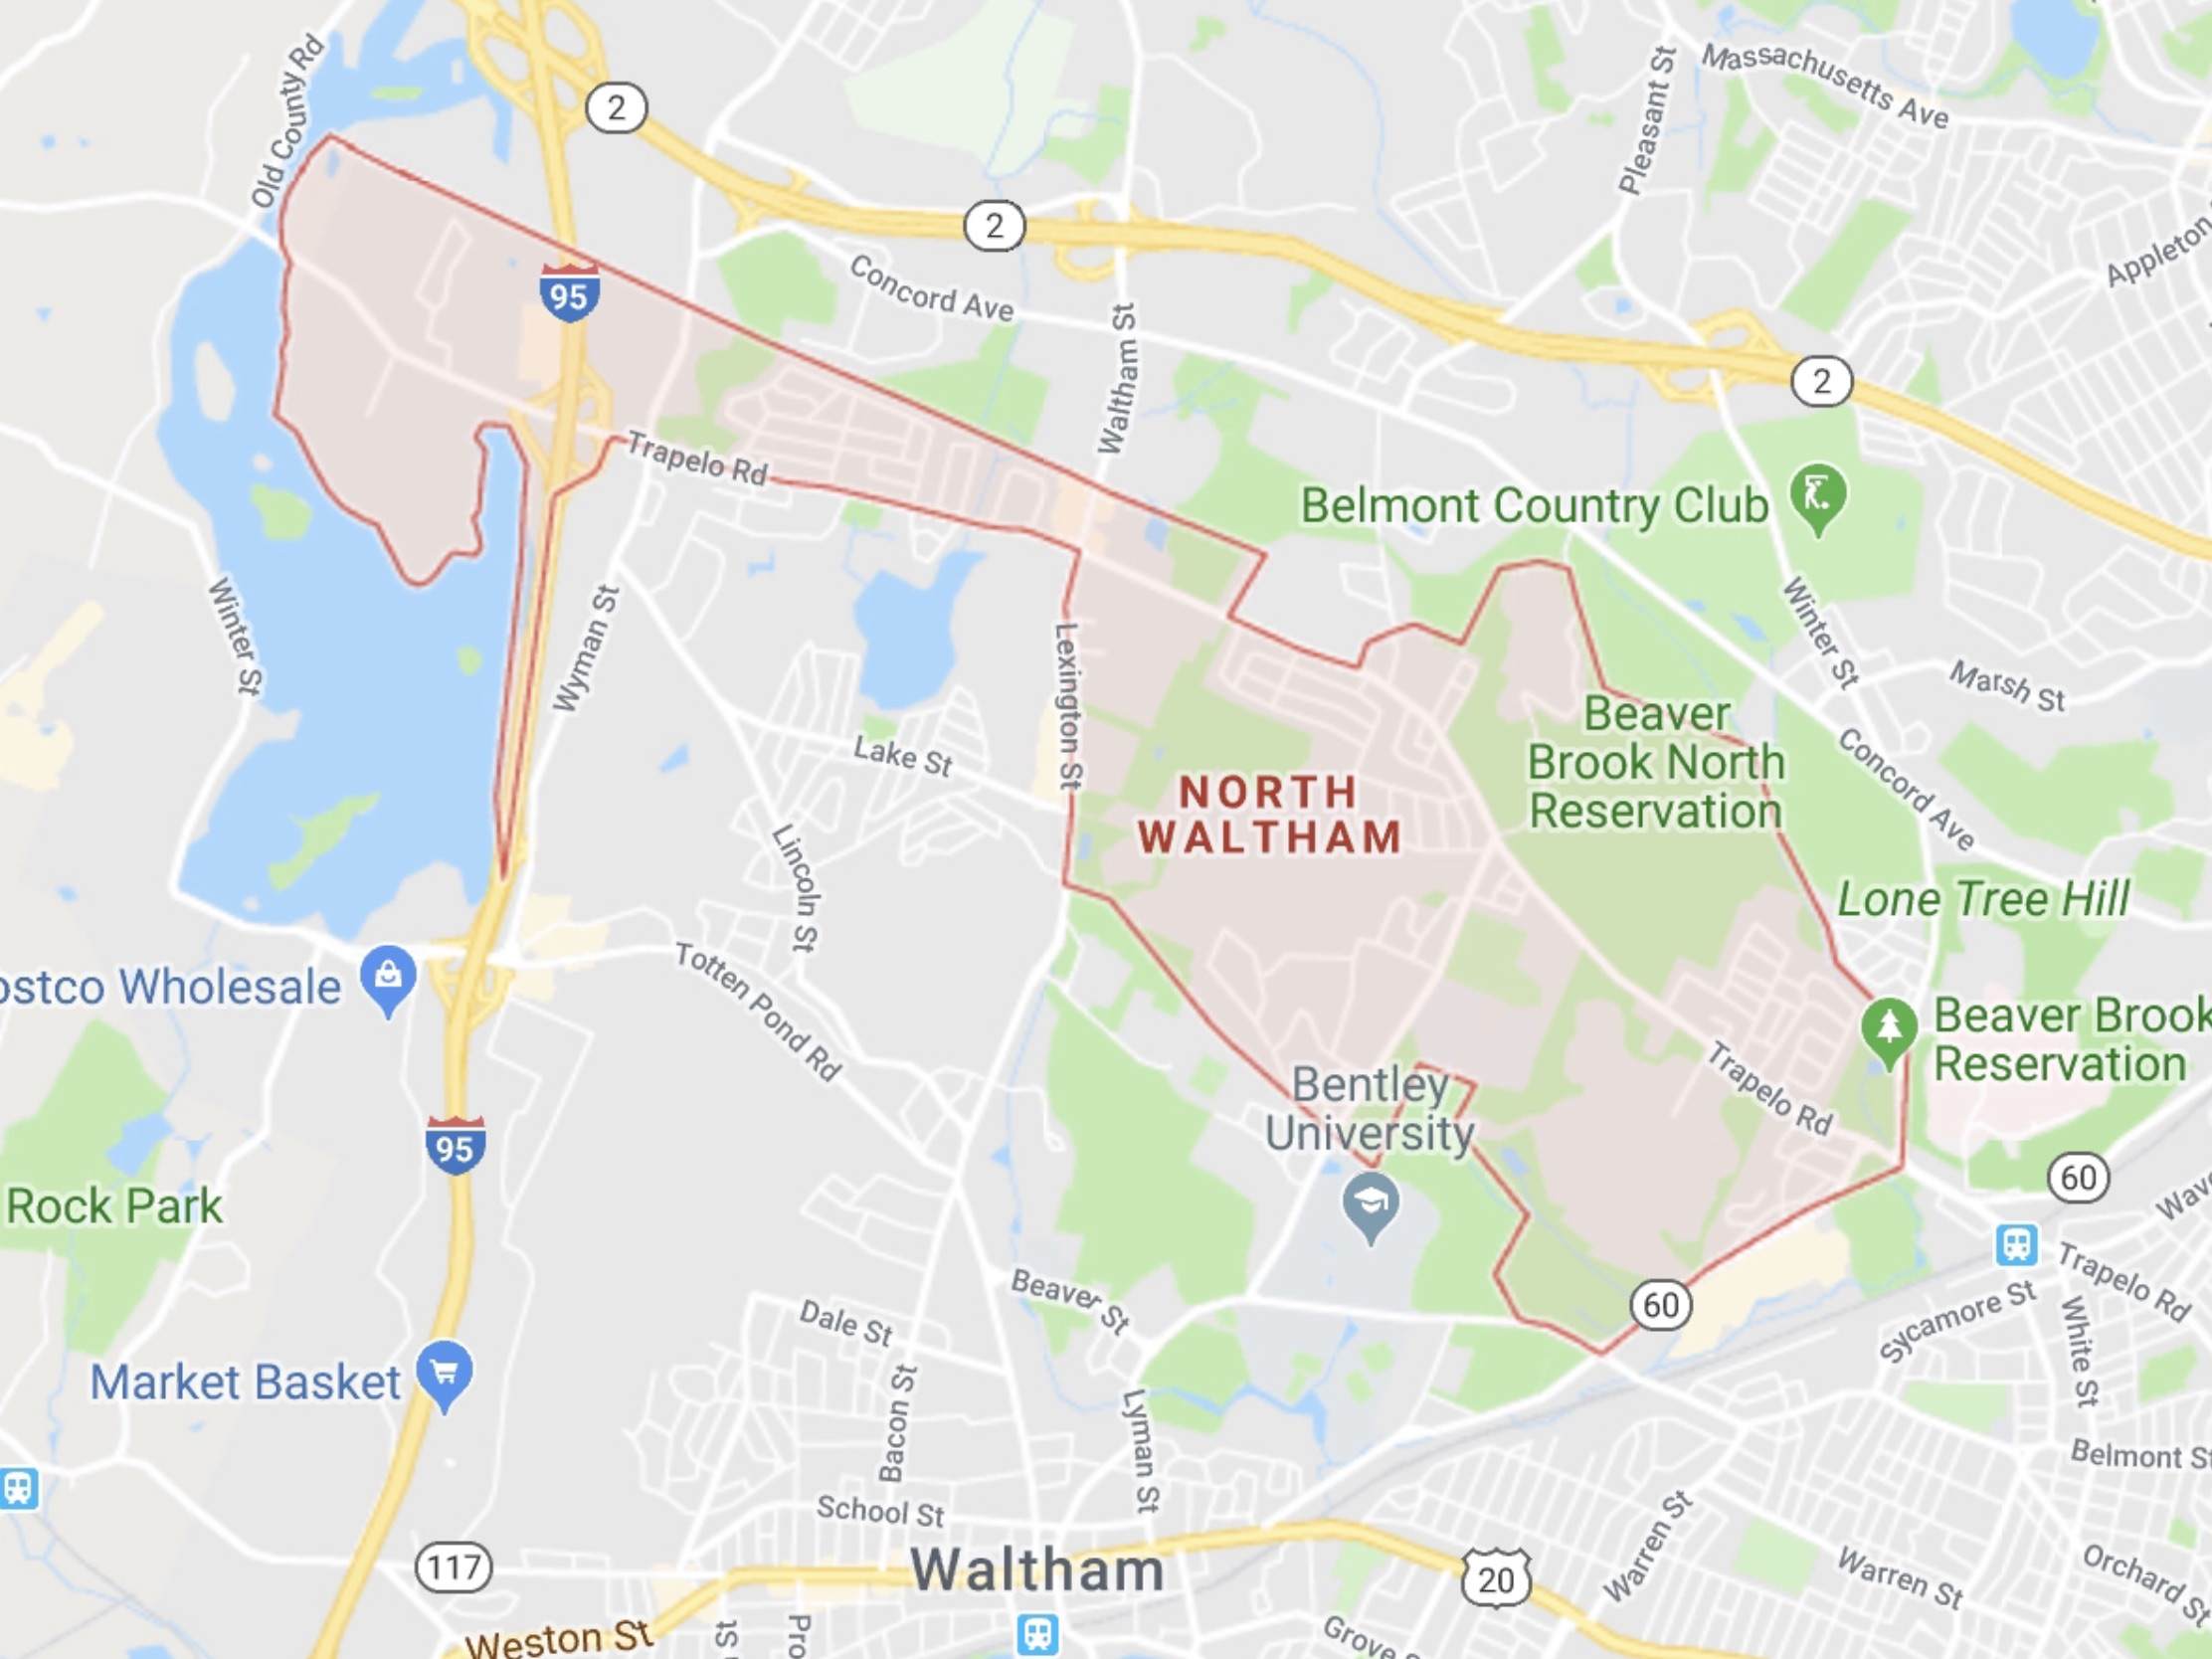 Jim Sells Waltham - North Waltham